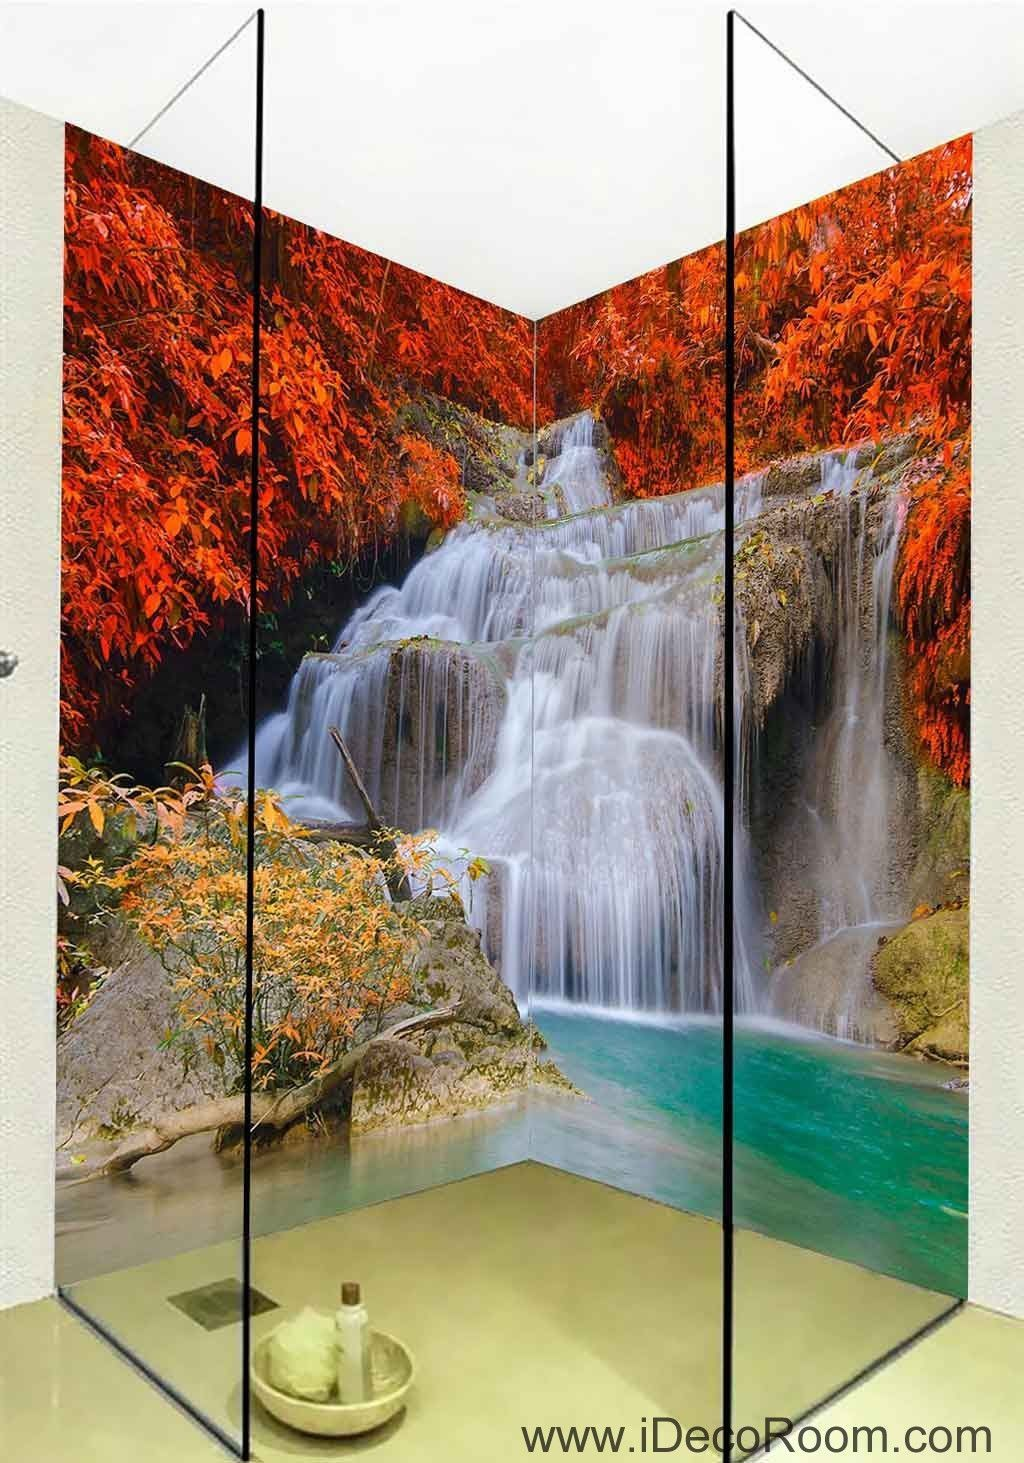 3d wallpaper red leaves waterfall wall murals bathroom decals wall 3d wallpaper red leaves waterfall wall murals bathroom decals wall art print home office decor